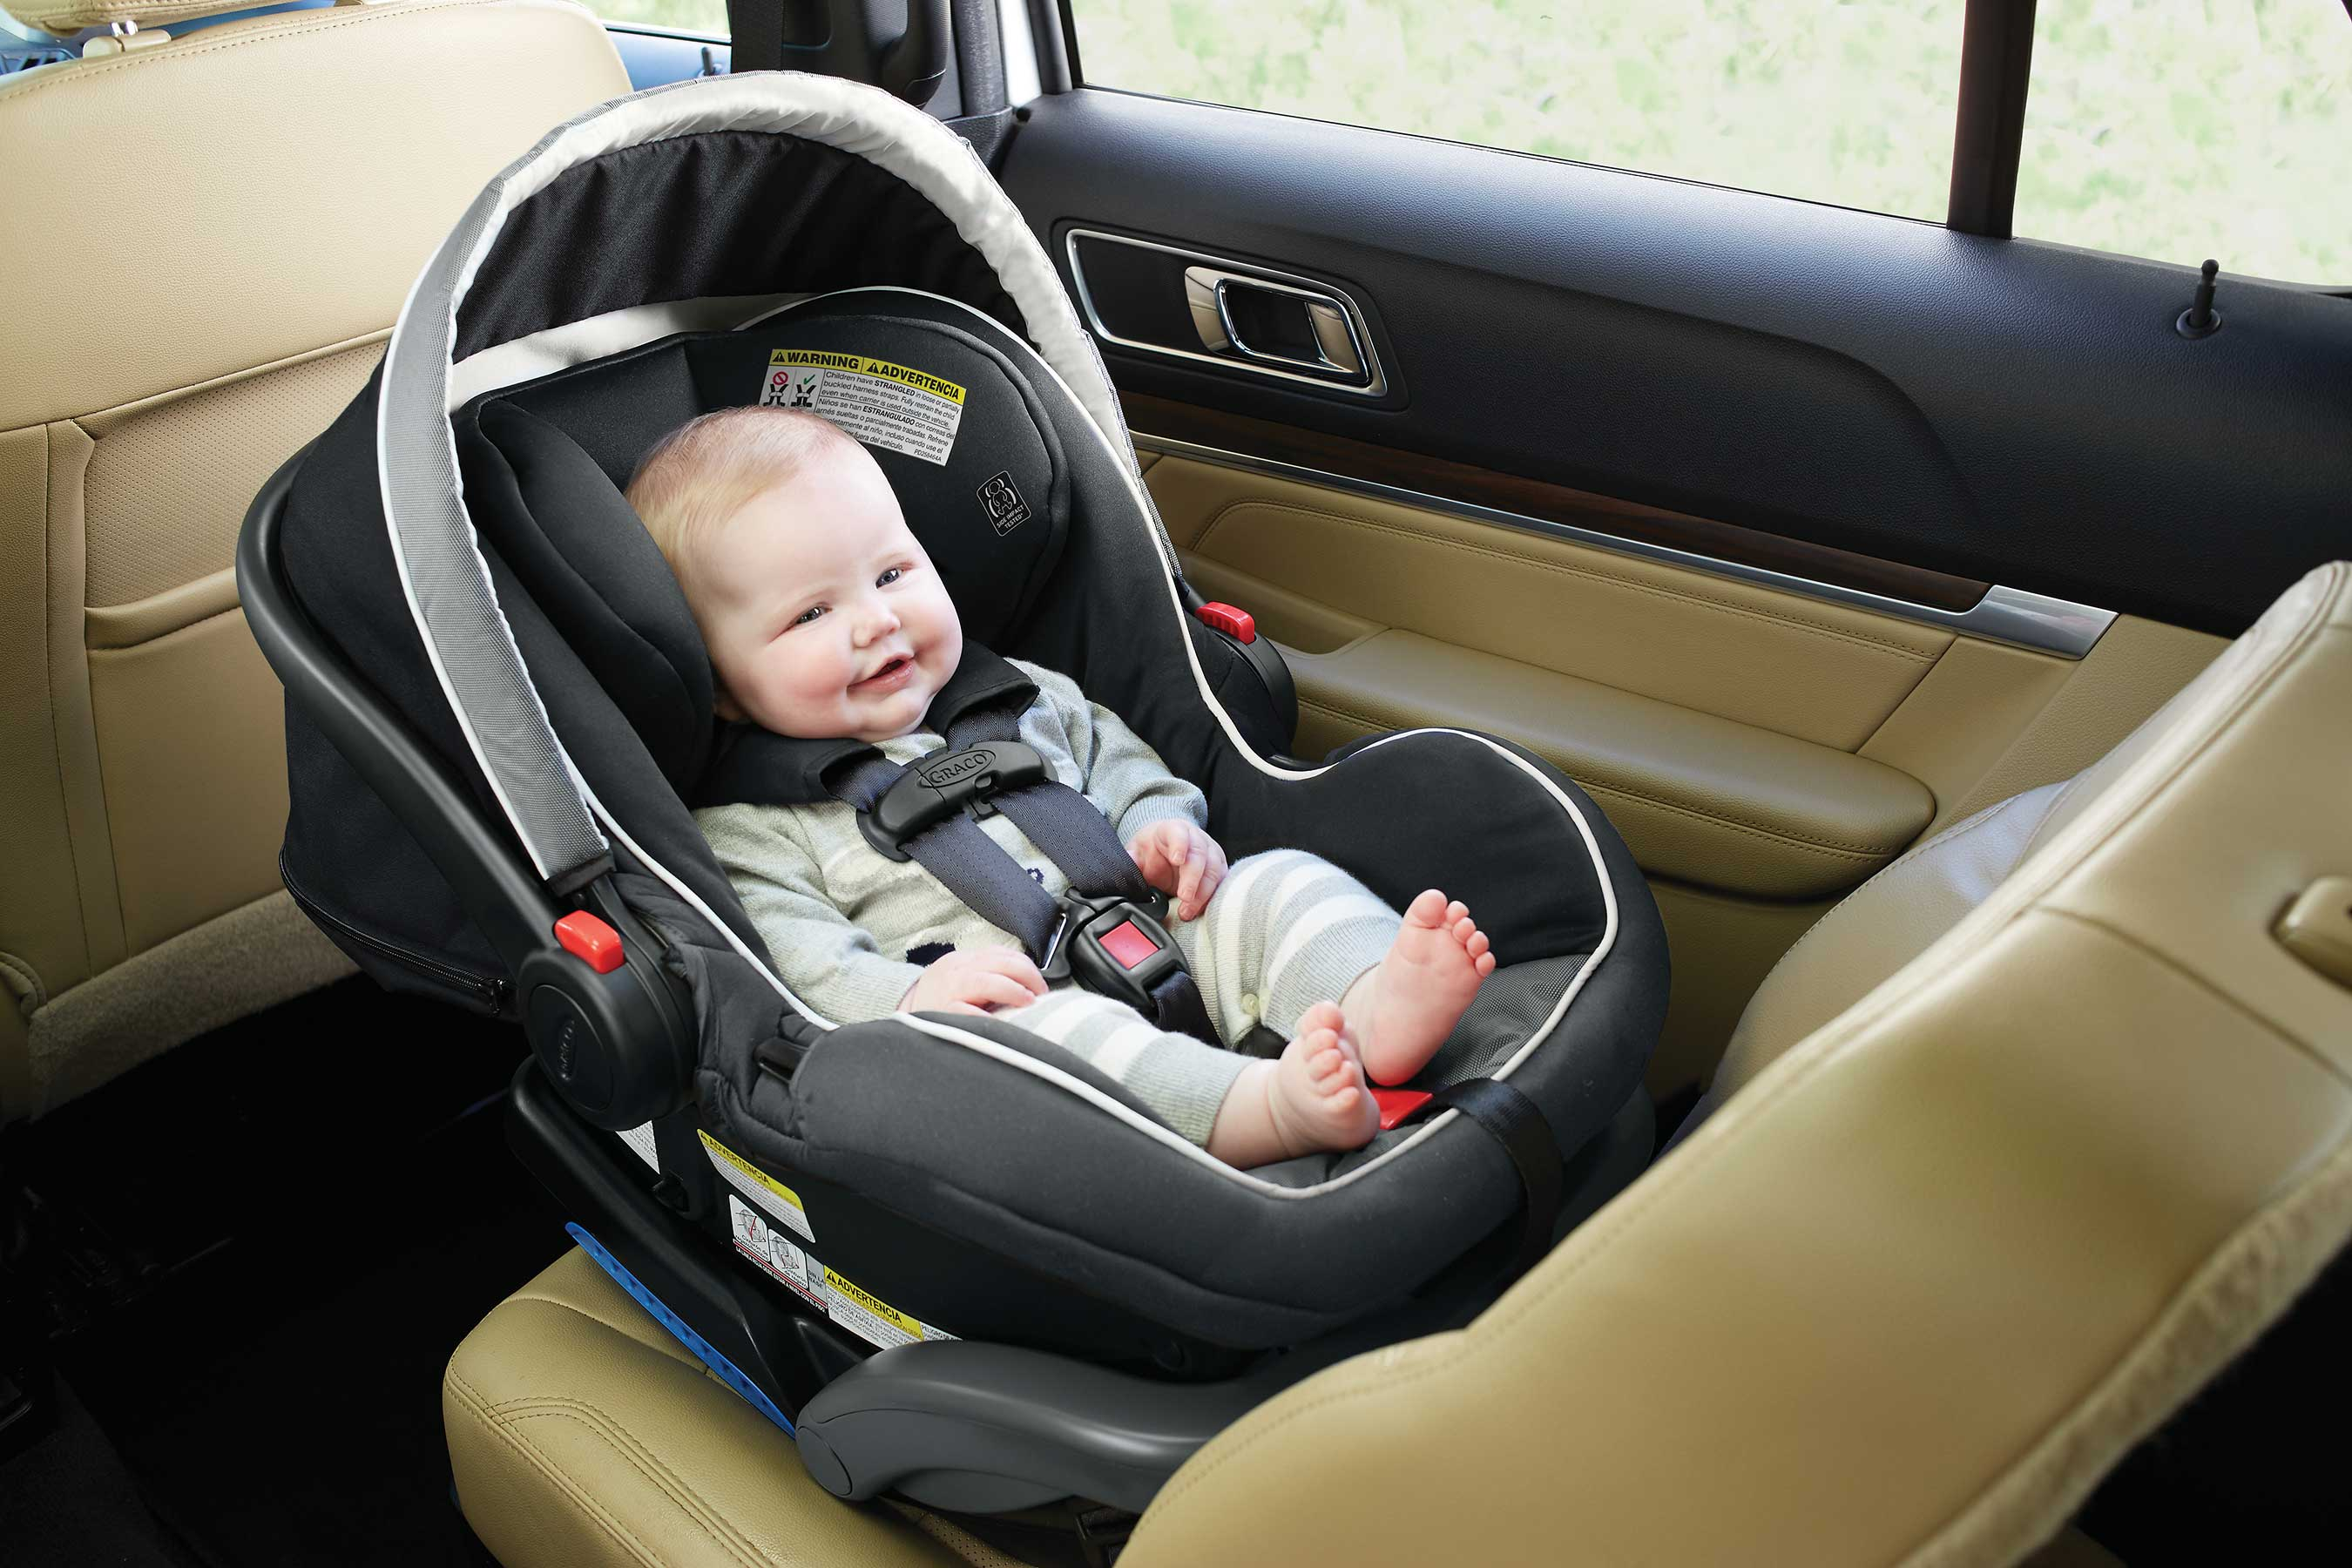 https://www.multivu.com/players/English/8102751-graco-snugride-snuglock-baby-infant-car-seat/image/35dlxinfantseat-1494908966325-1-HR.jpg